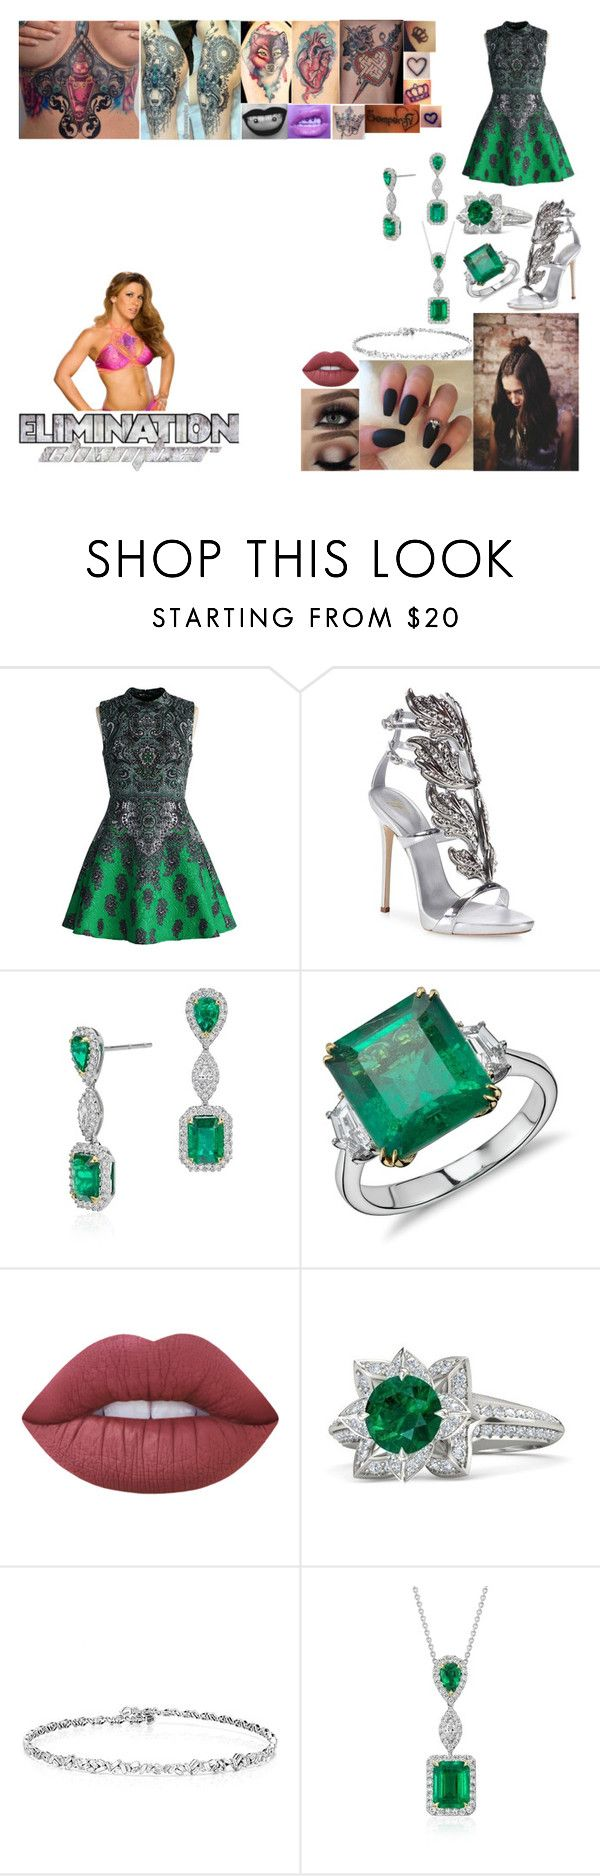 """""""Walking Mickie James Out To Her Match at Elimination Chamber"""" by belabmilagres ❤ liked on Polyvore featuring WWE, Chicwish, Giuseppe Zanotti, Blue Nile, Lime Crime and Gemvara"""